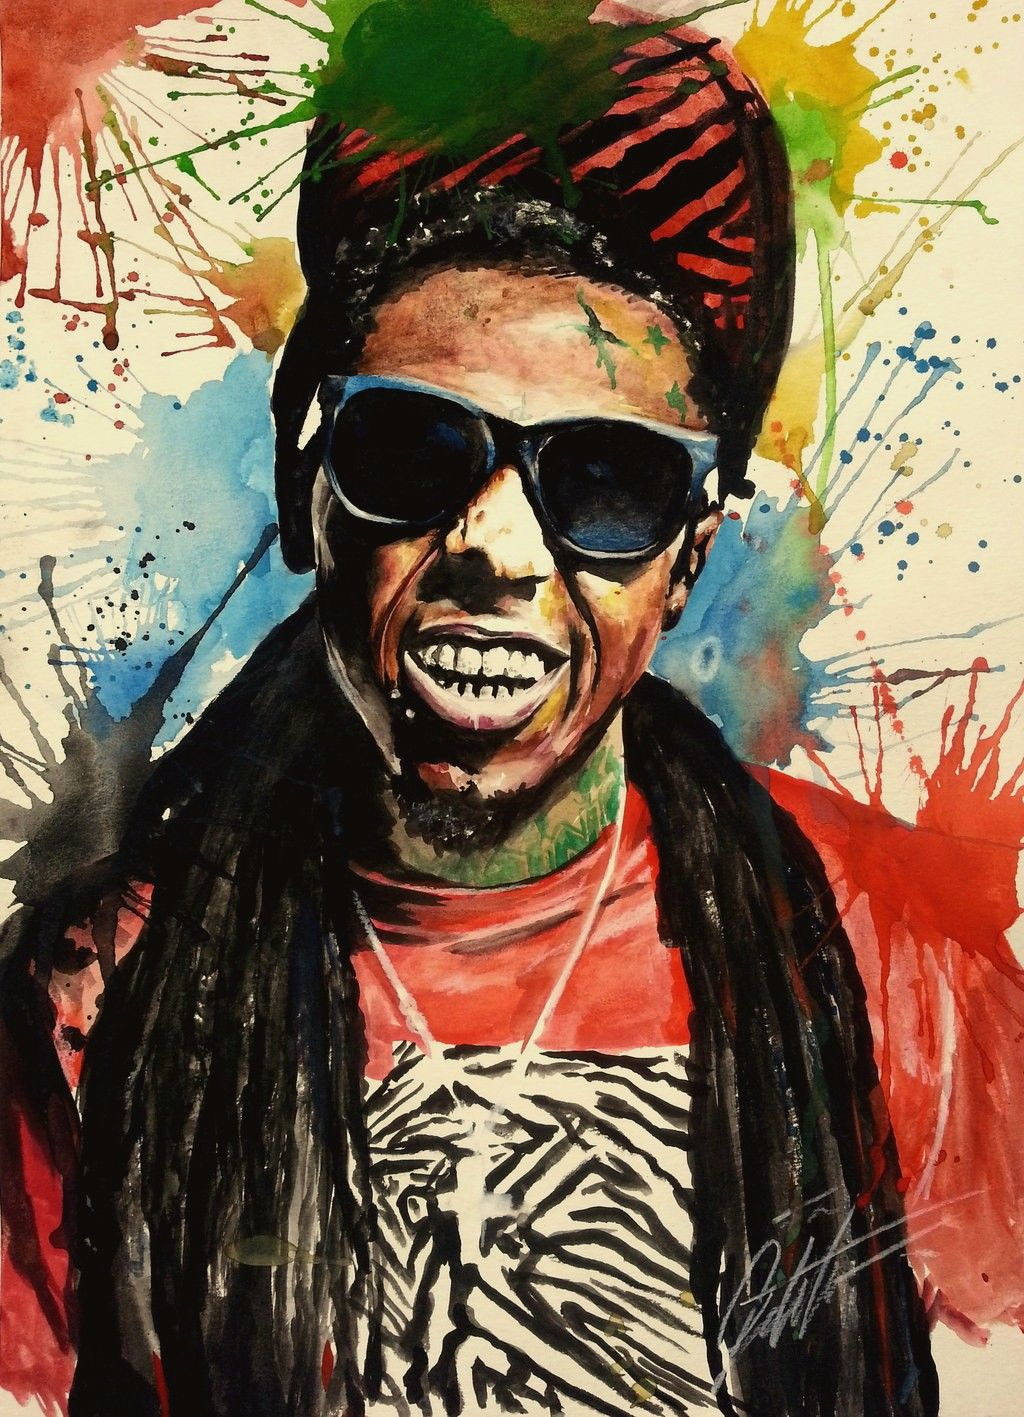 Lil Wayne HD wallpapers free Download 1920×1080 Lil Wayne